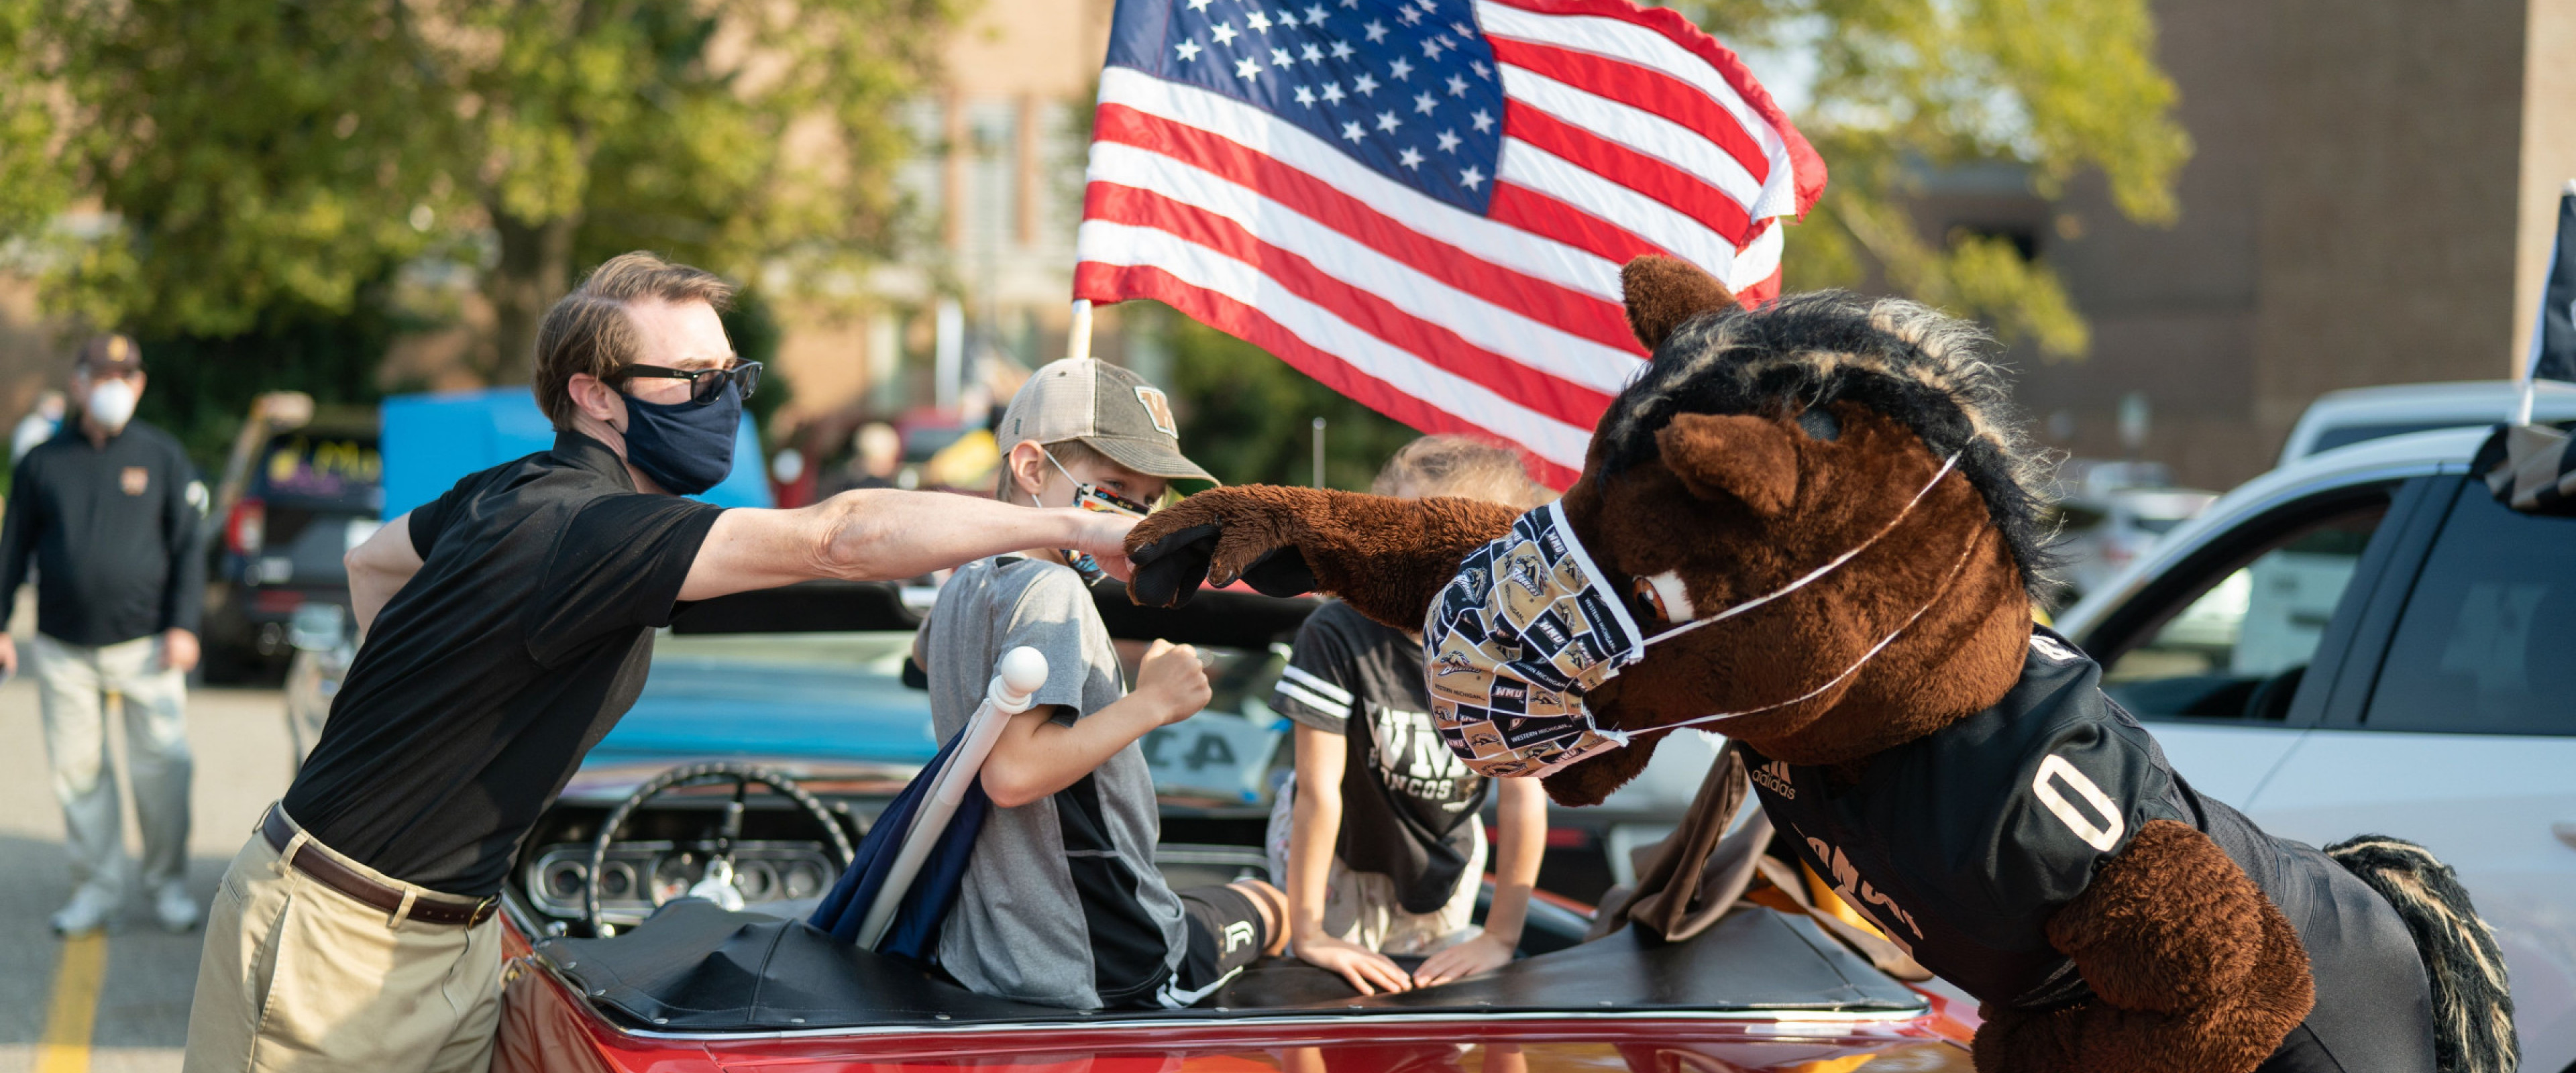 Buster Bronco bumps the fist of a man during the parade.